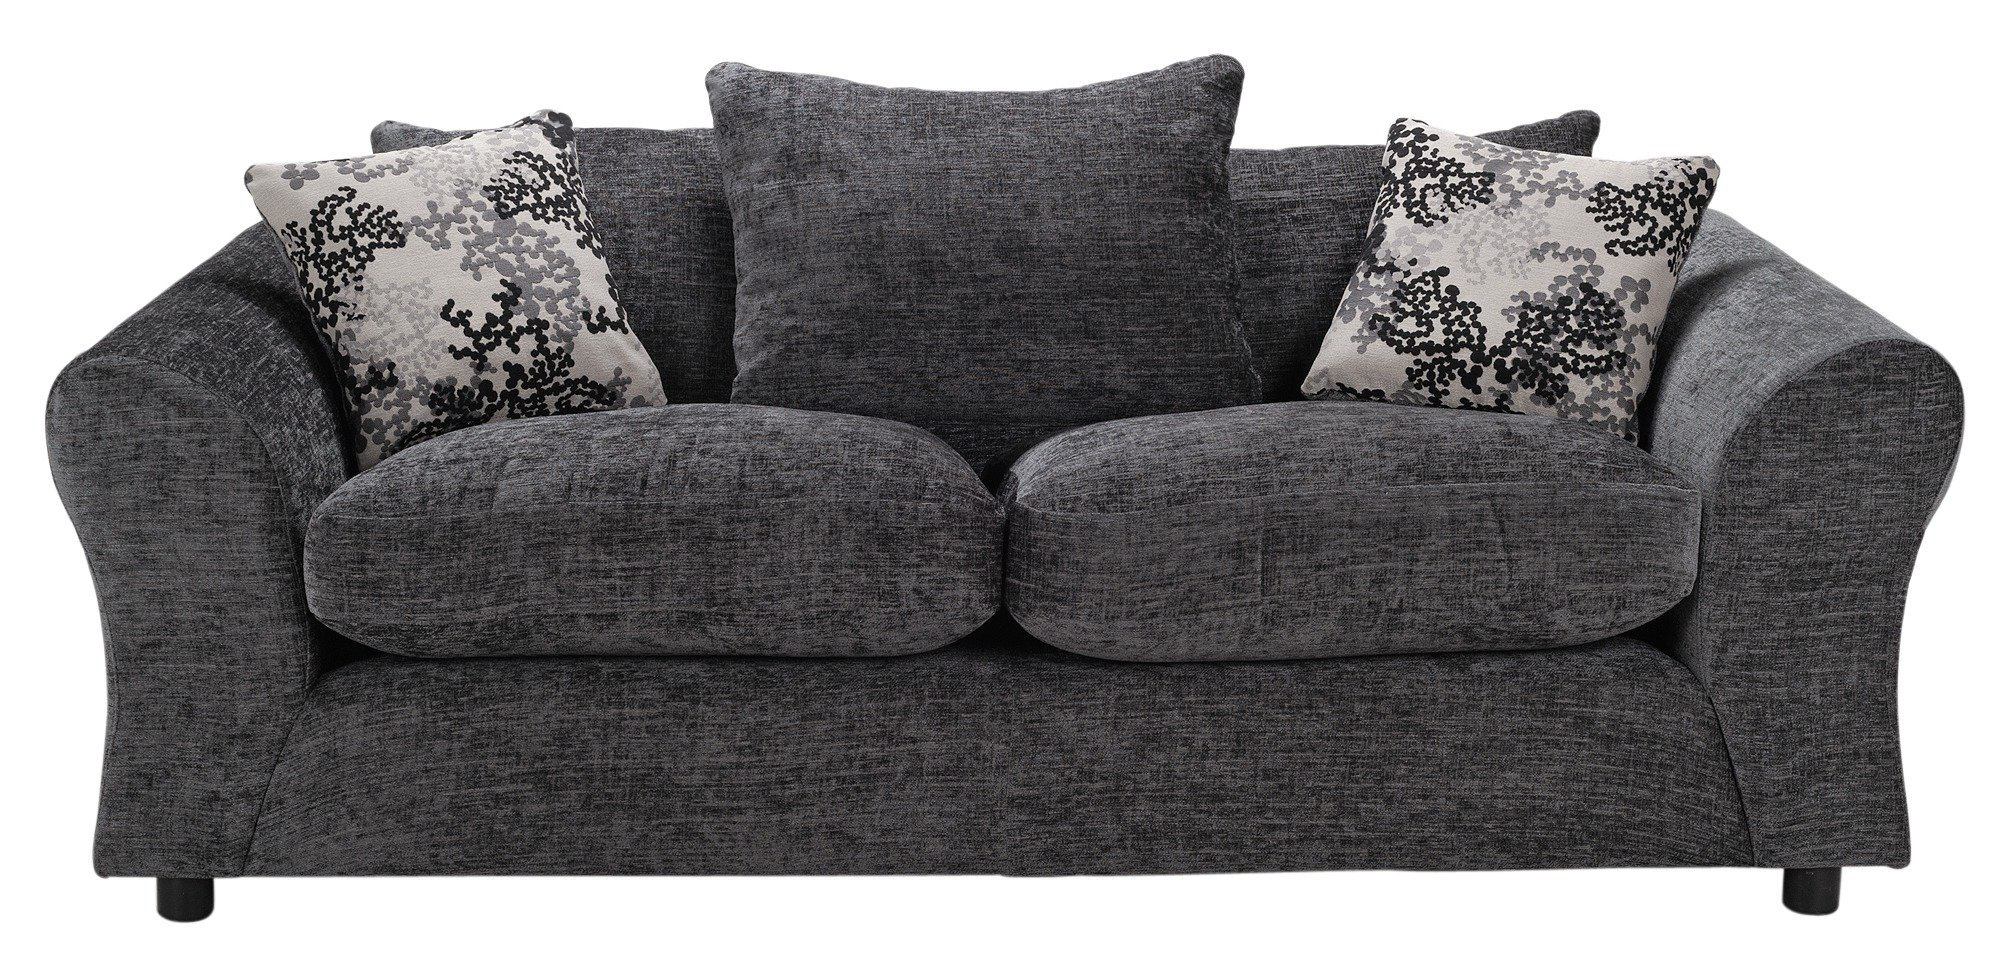 HOME - Clara Large and Large Fabric - Sofa - Charcoal